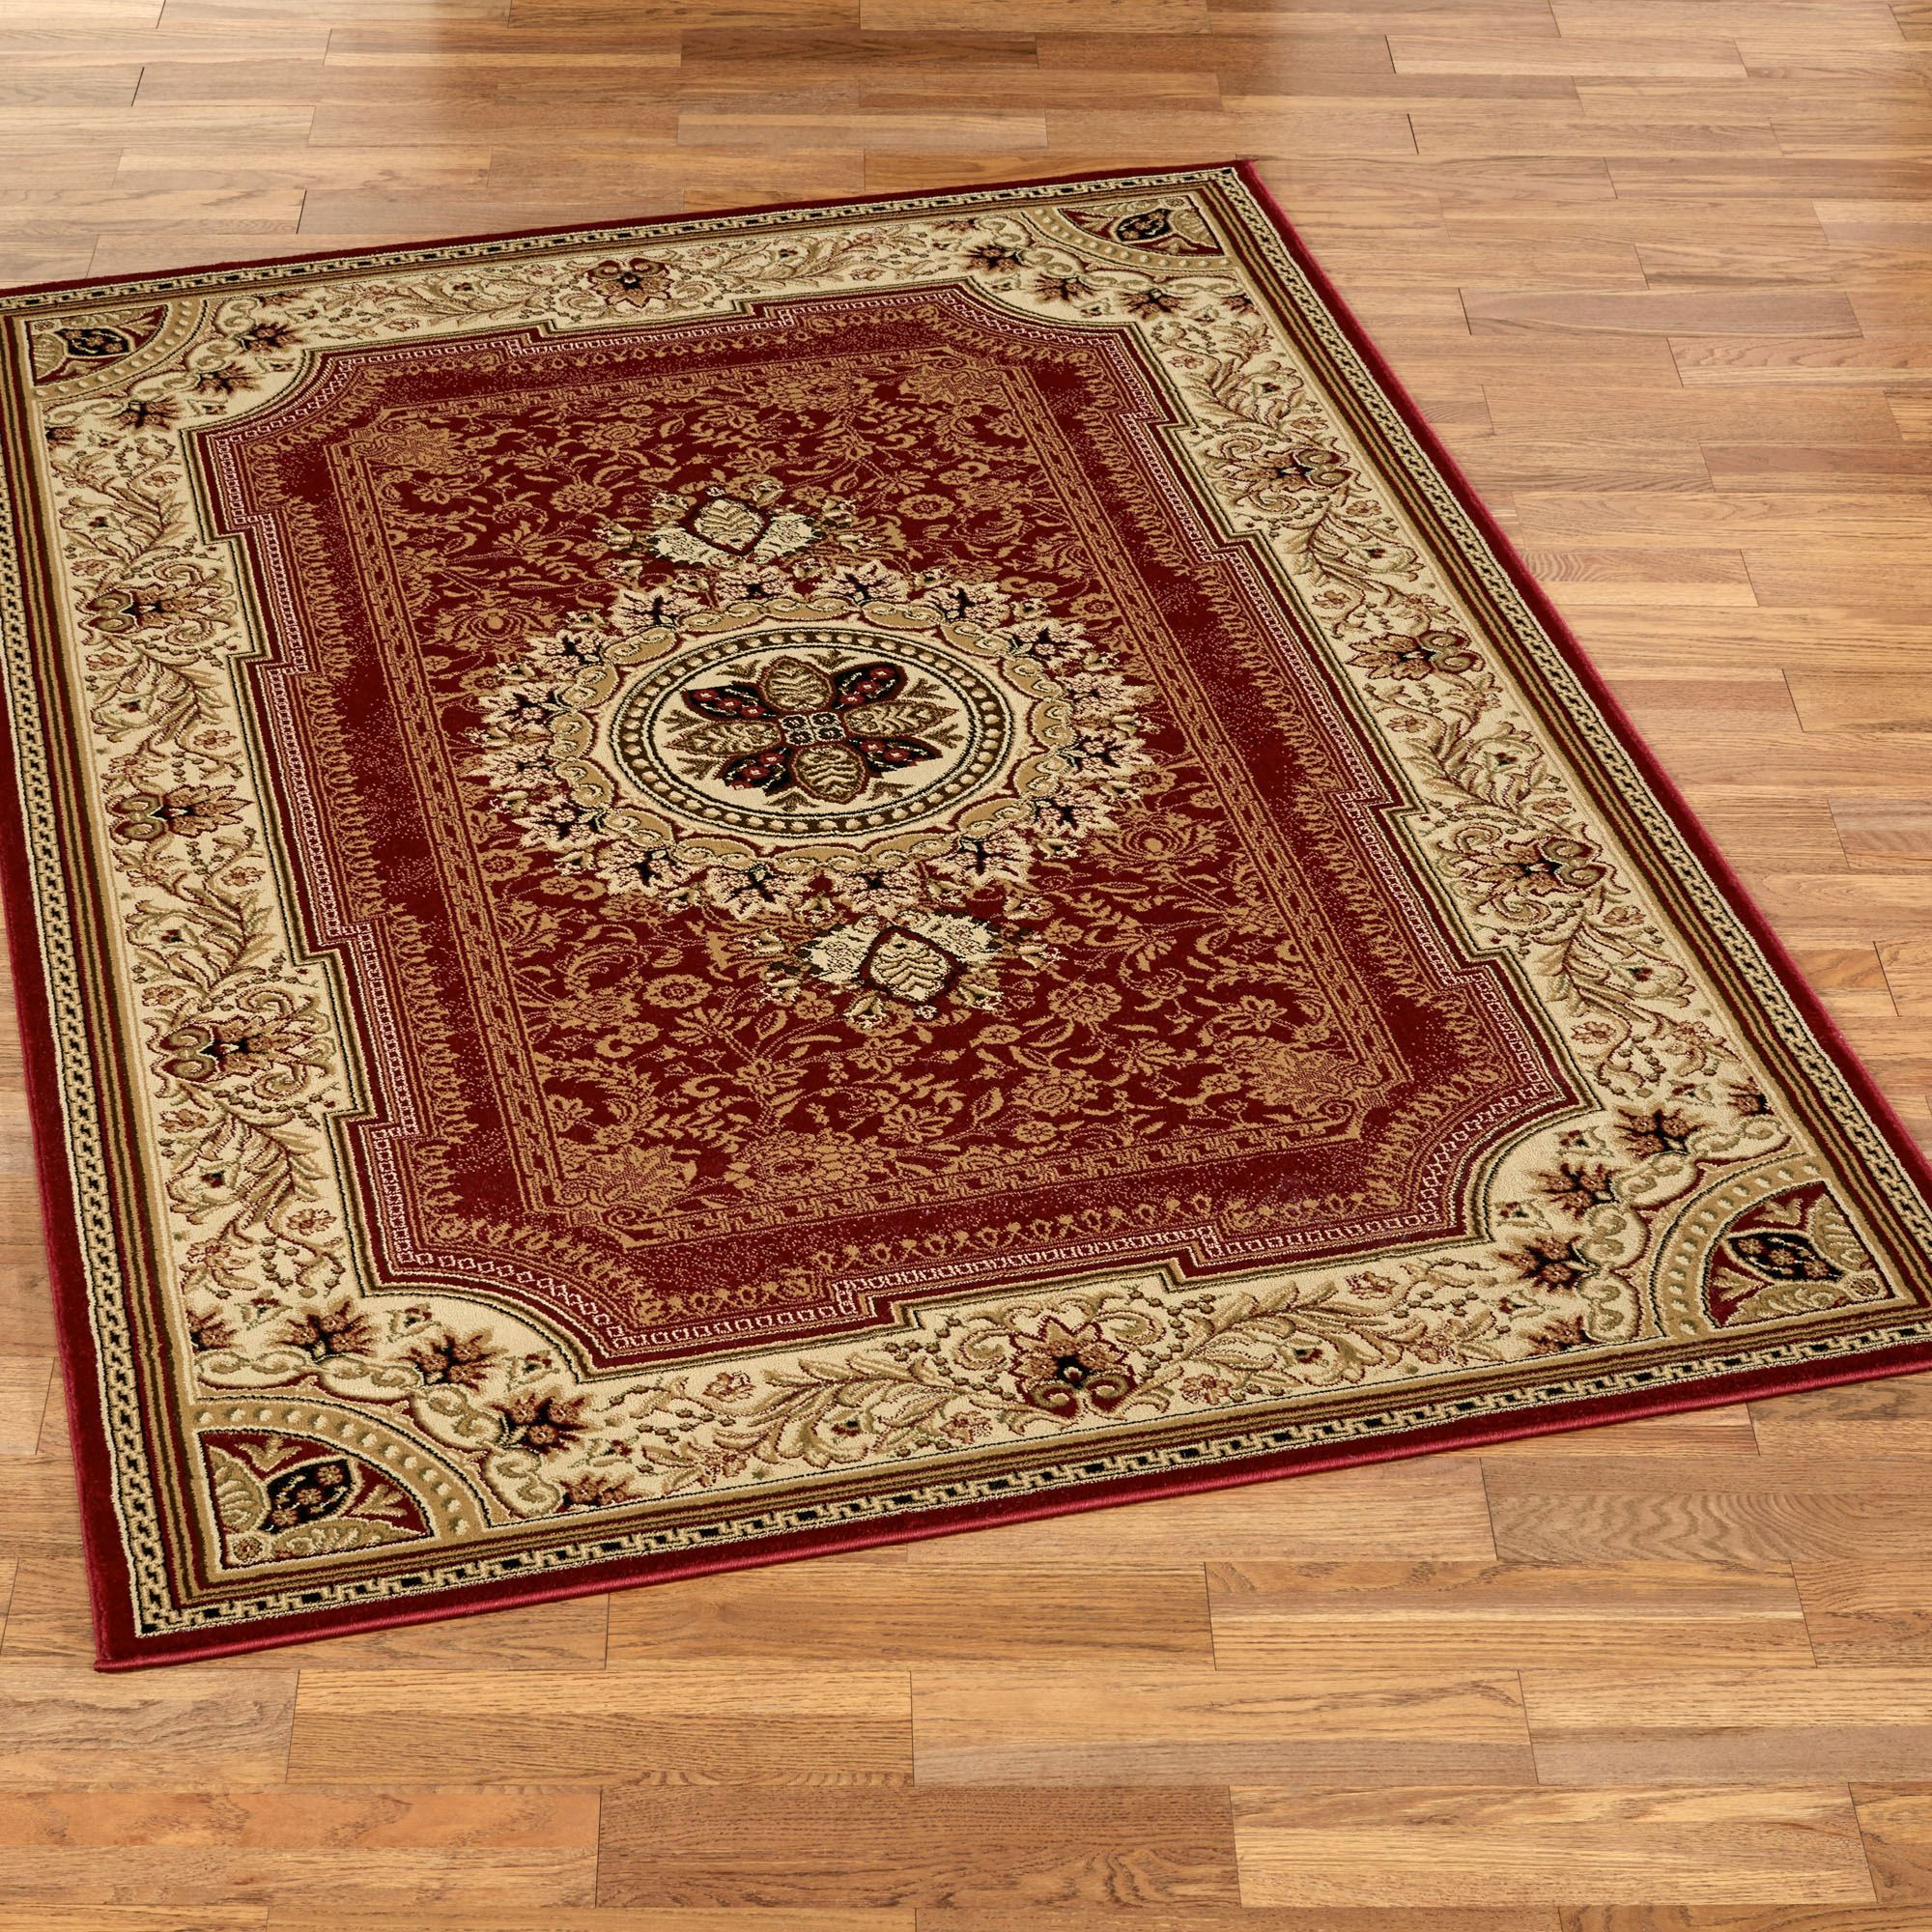 Brand-new Chateau Traditional Medallion Area Rugs HN52